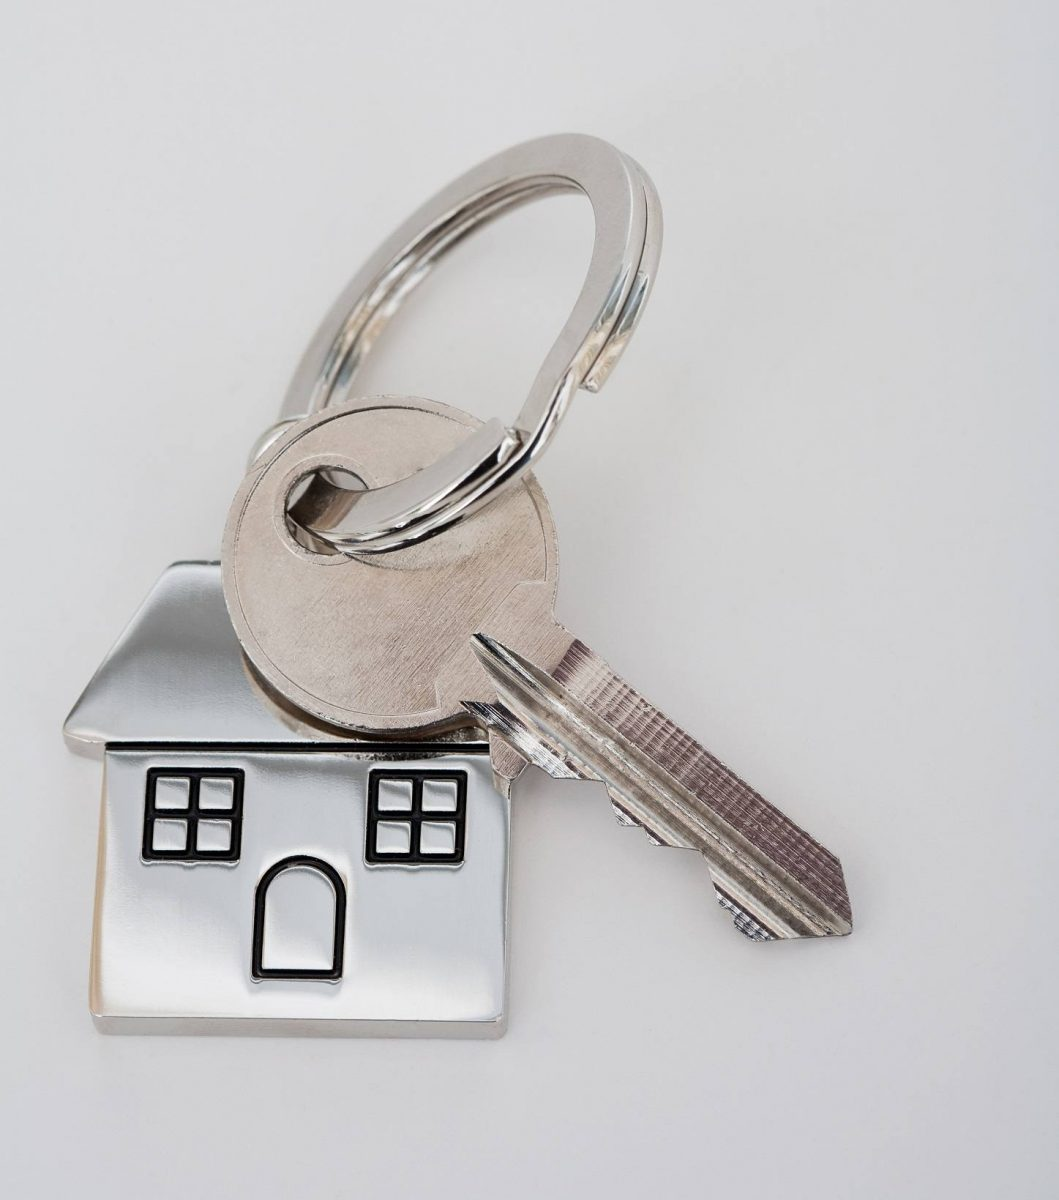 private rented sector - house keyring